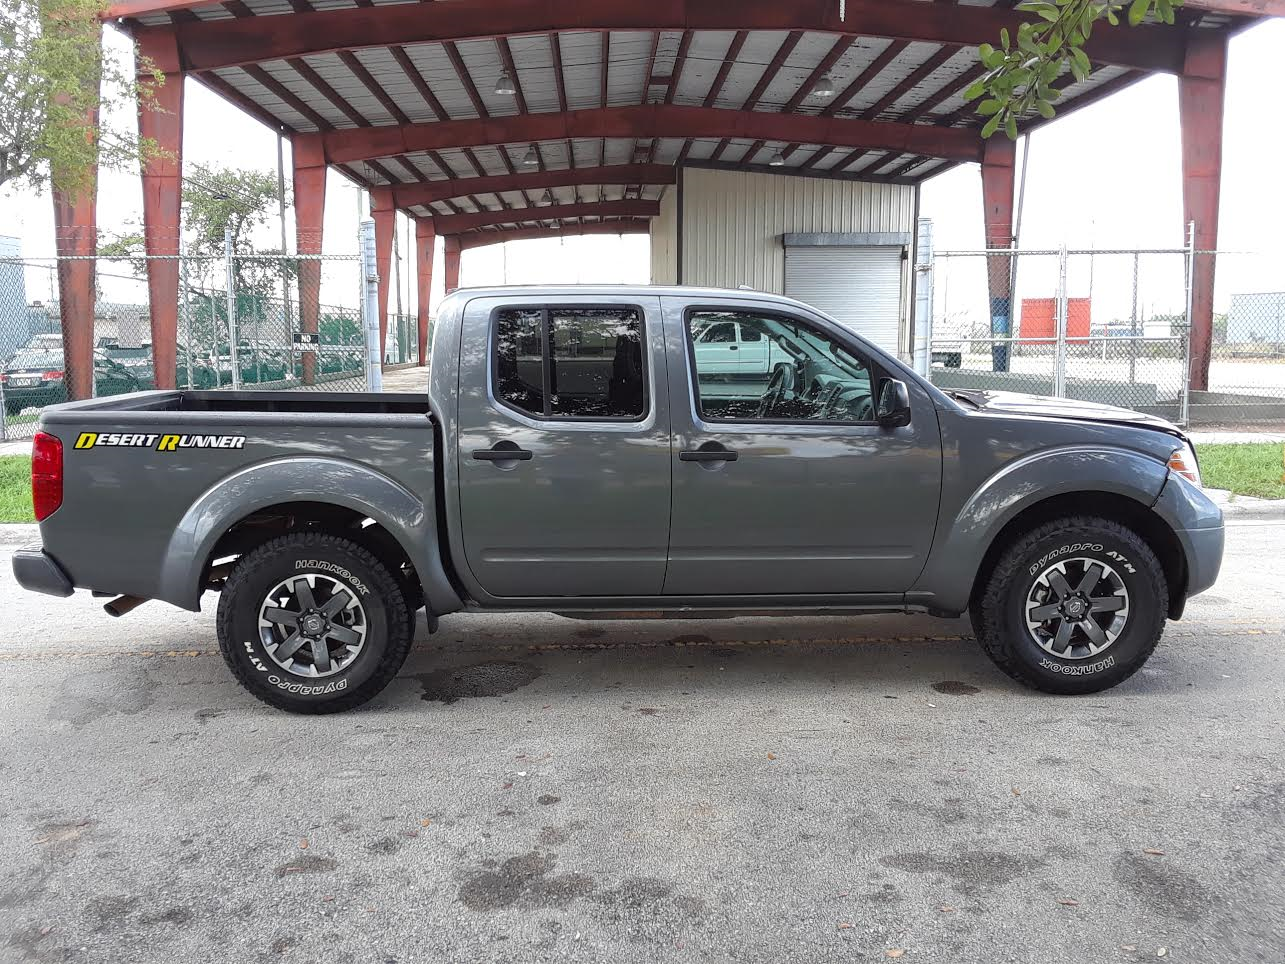 Invoice For Car Excel  Honda Ridgeline Price  Cargurus Software For Invoices with Free Invoicing Software Mac Pdf Picture Of  Nissan Frontier Desert Runner Crew Cab Exterior  Galleryworthy Email Confirmation Receipt